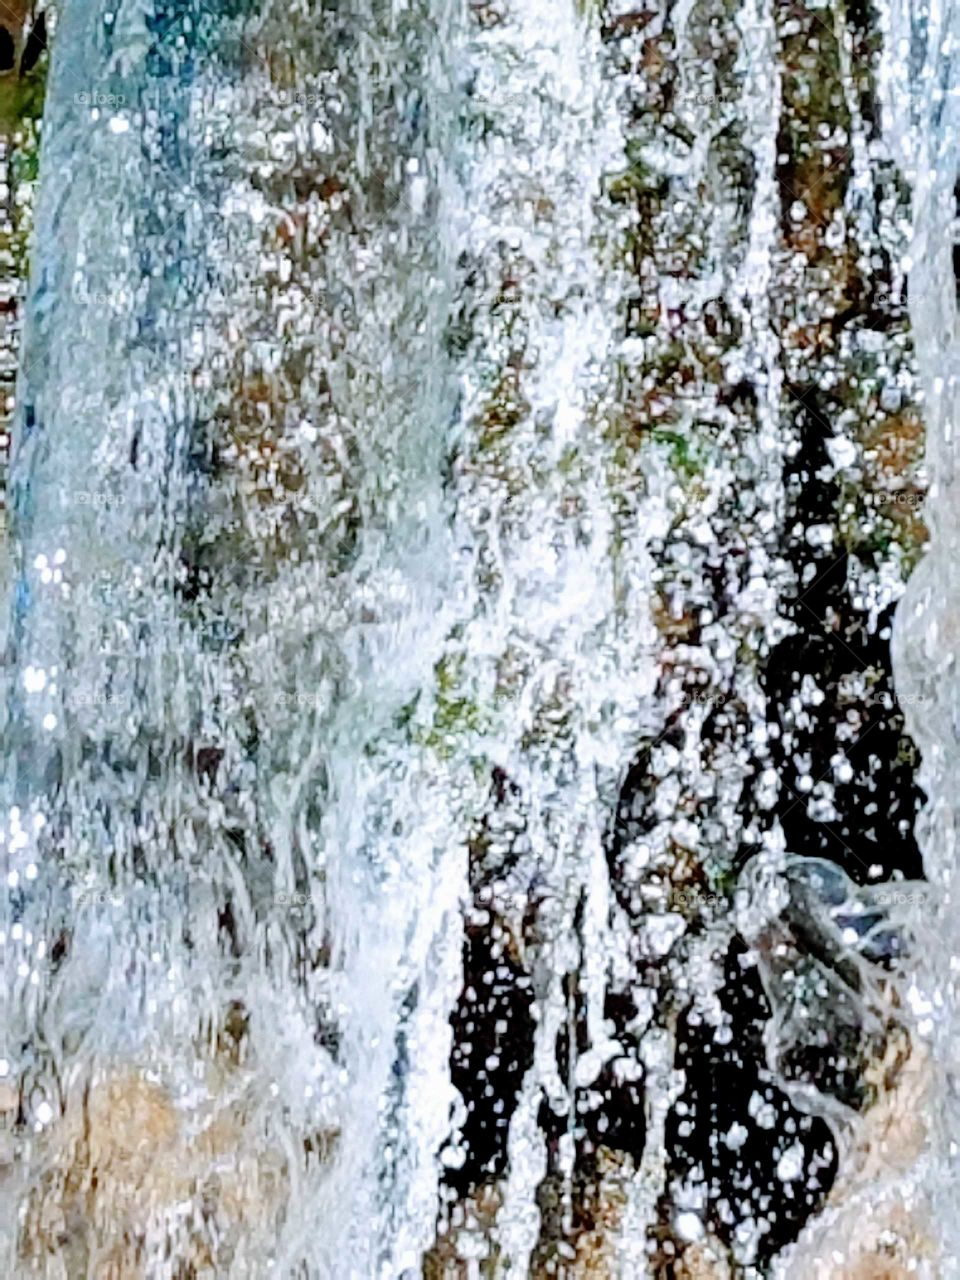 Abstract background of waterfall